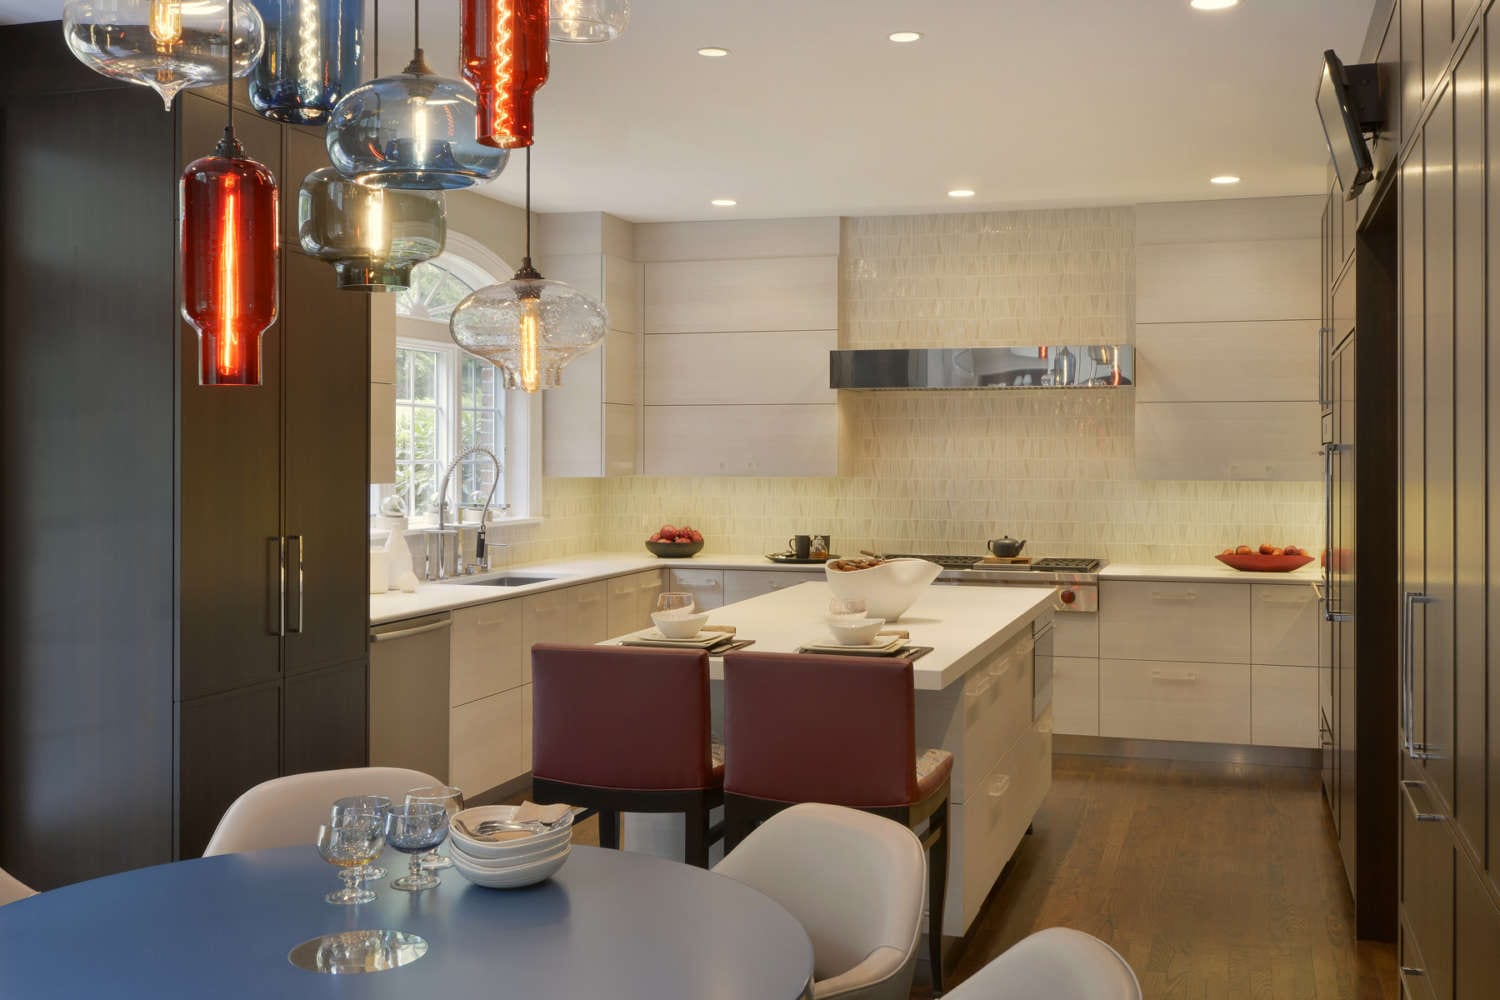 U-shaped kitchen features a center island and eat-in breakfast nook and fully custom, frameless Artcraft Cabinetry in a mix of flat panel with white textured laminate and shaker style in walnut. Red accents appear in the leather stools at the island and the pendant lights over the breakfast nook. Design by RitaLuisa Garces of Bilotta Kitchens.